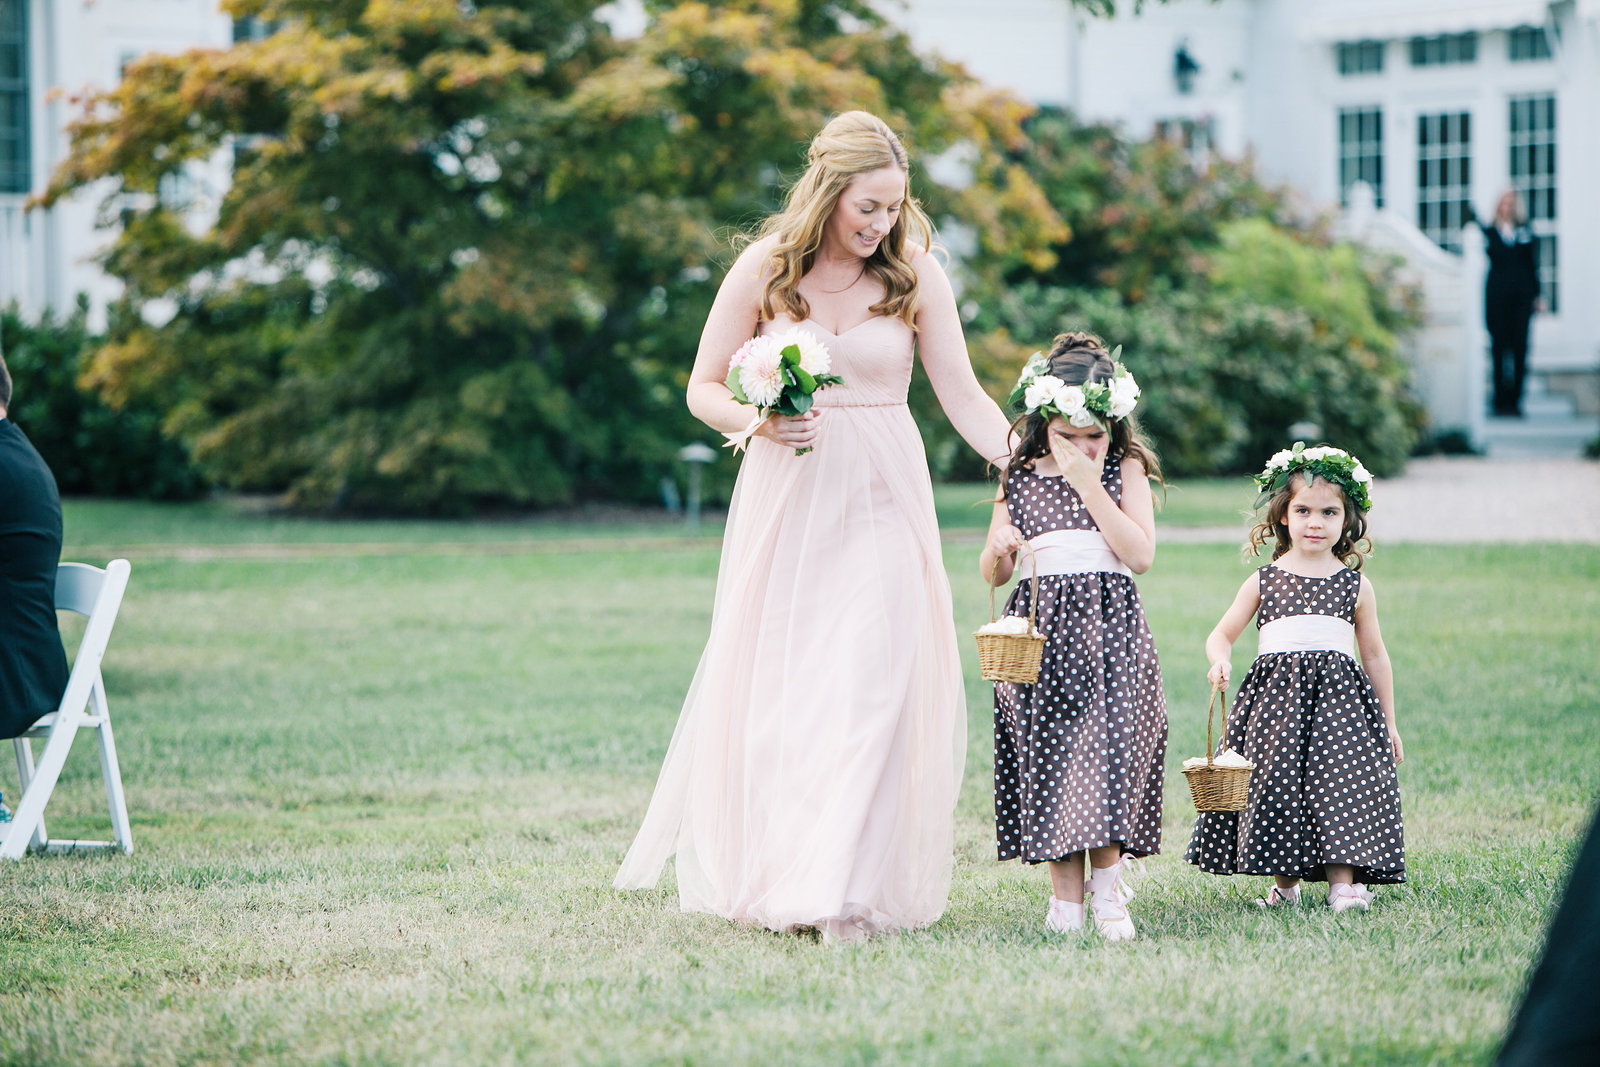 230Morgan_Kevin_WeddingIMG_4935